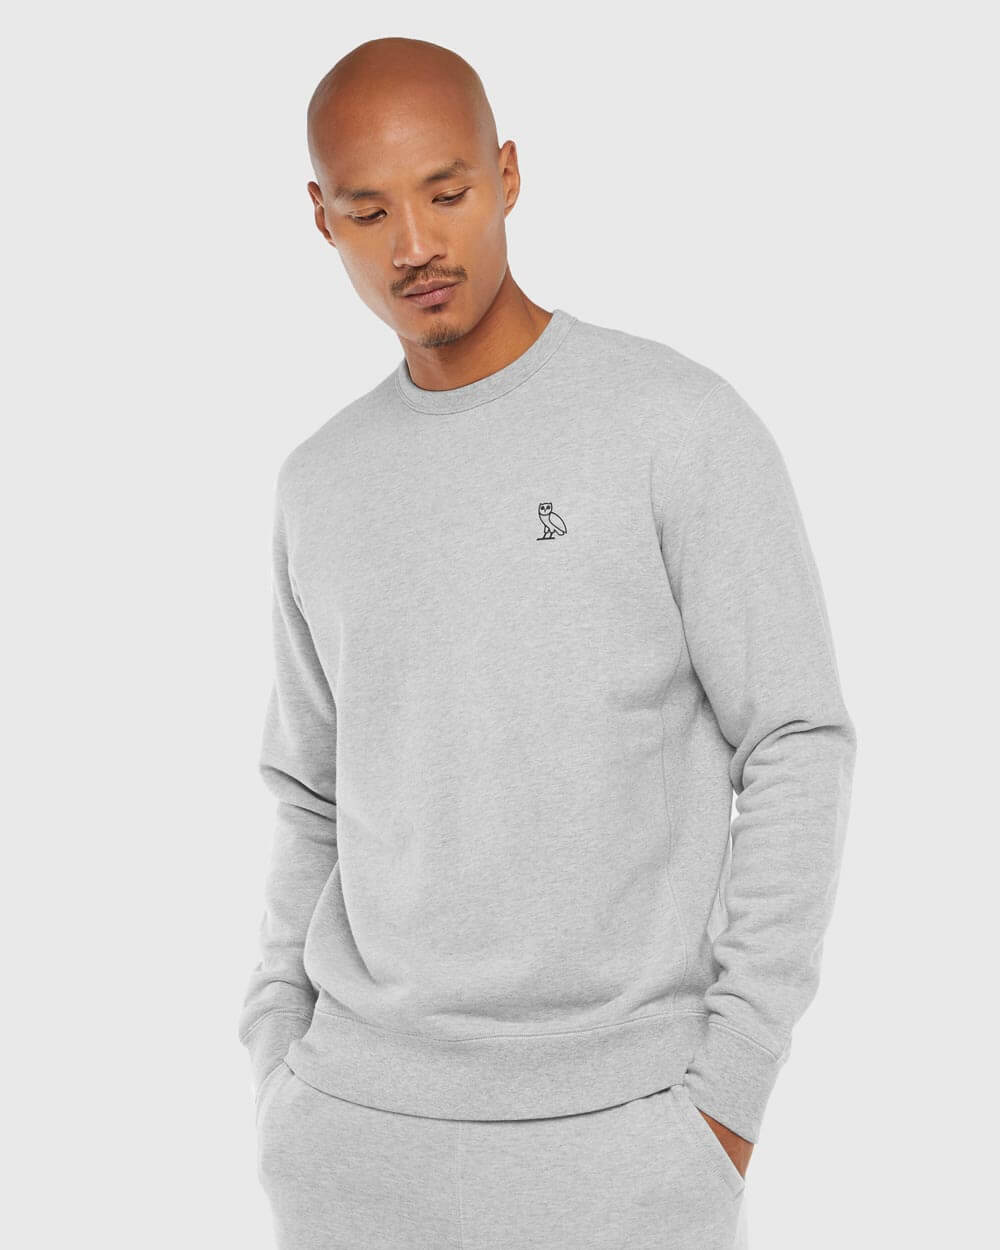 MID-WEIGHT FRENCH TERRY CREW - HEATHER GREY